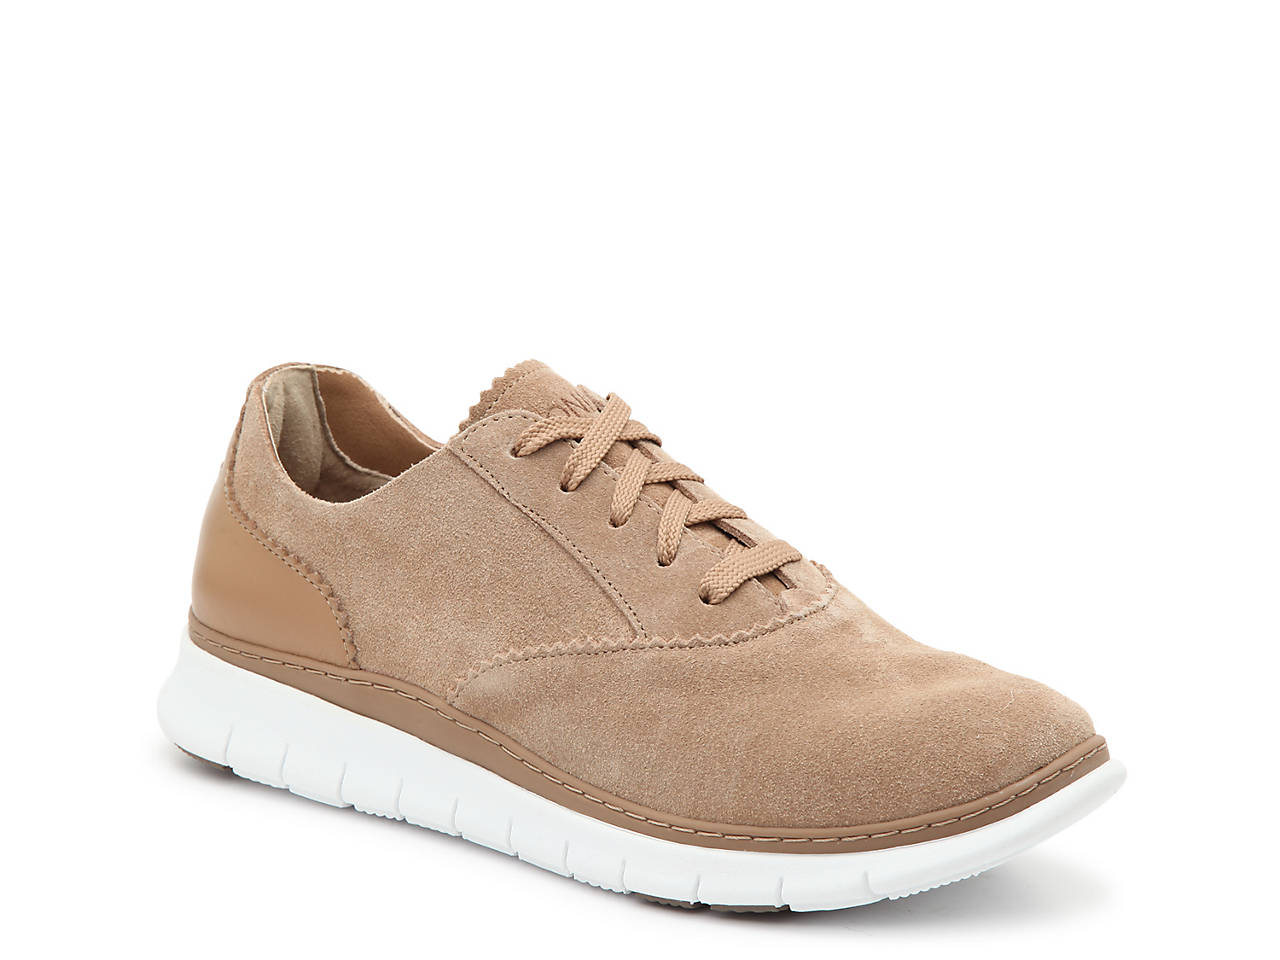 Comfort Shoes Clothing, Shoes & Accessories Vionic Womens Taylor